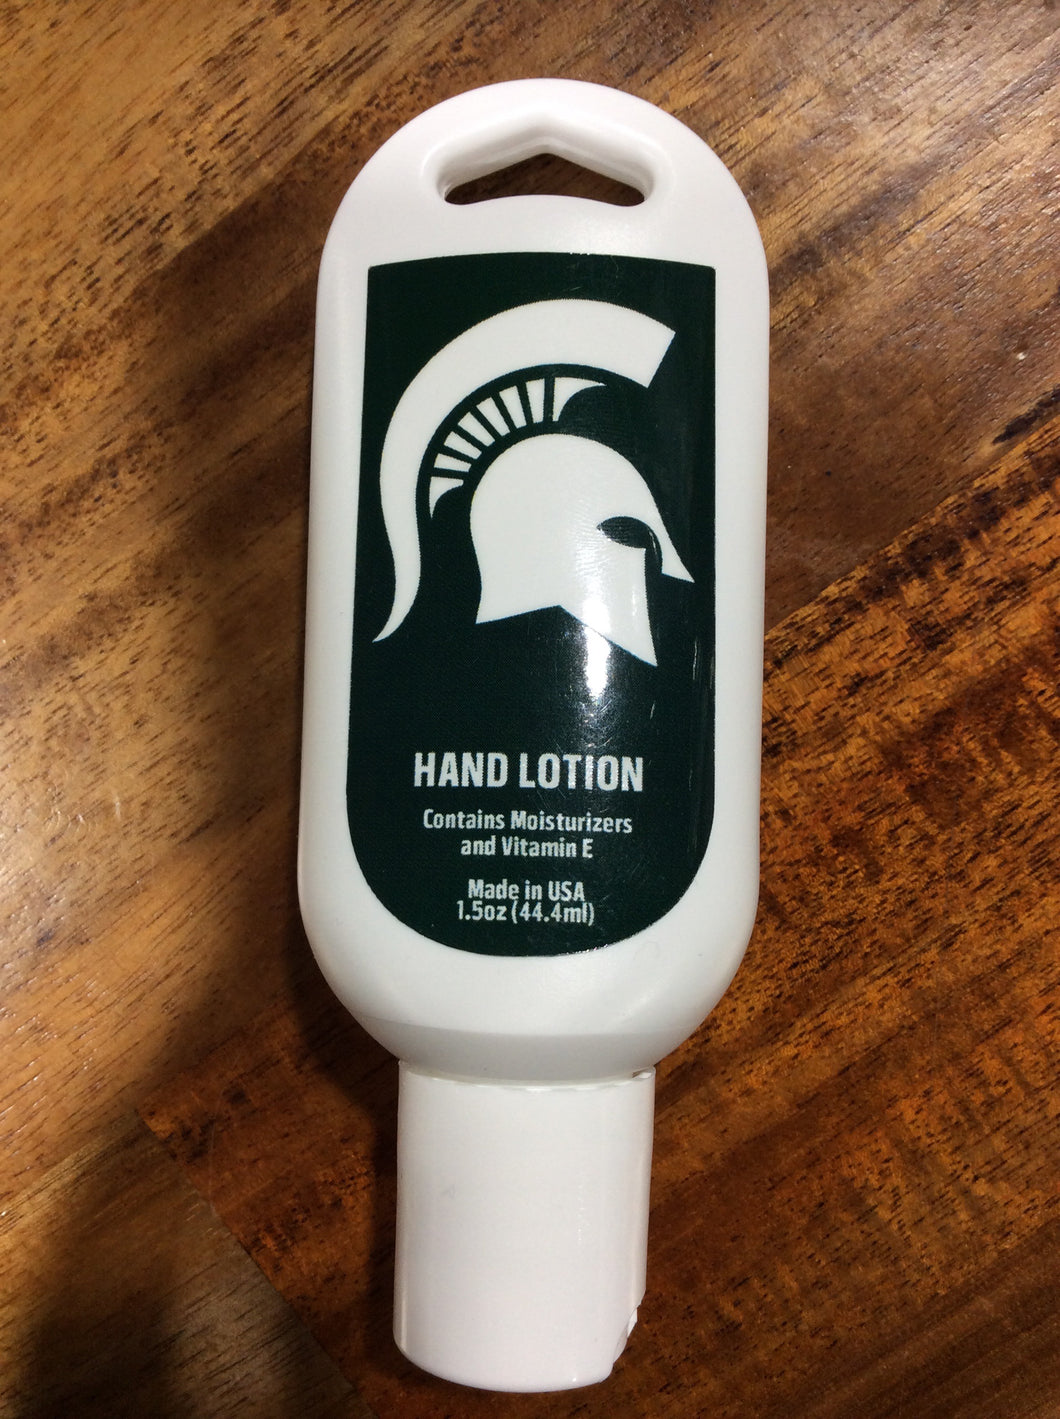 #Spartan 1.5oz Hand Lotion